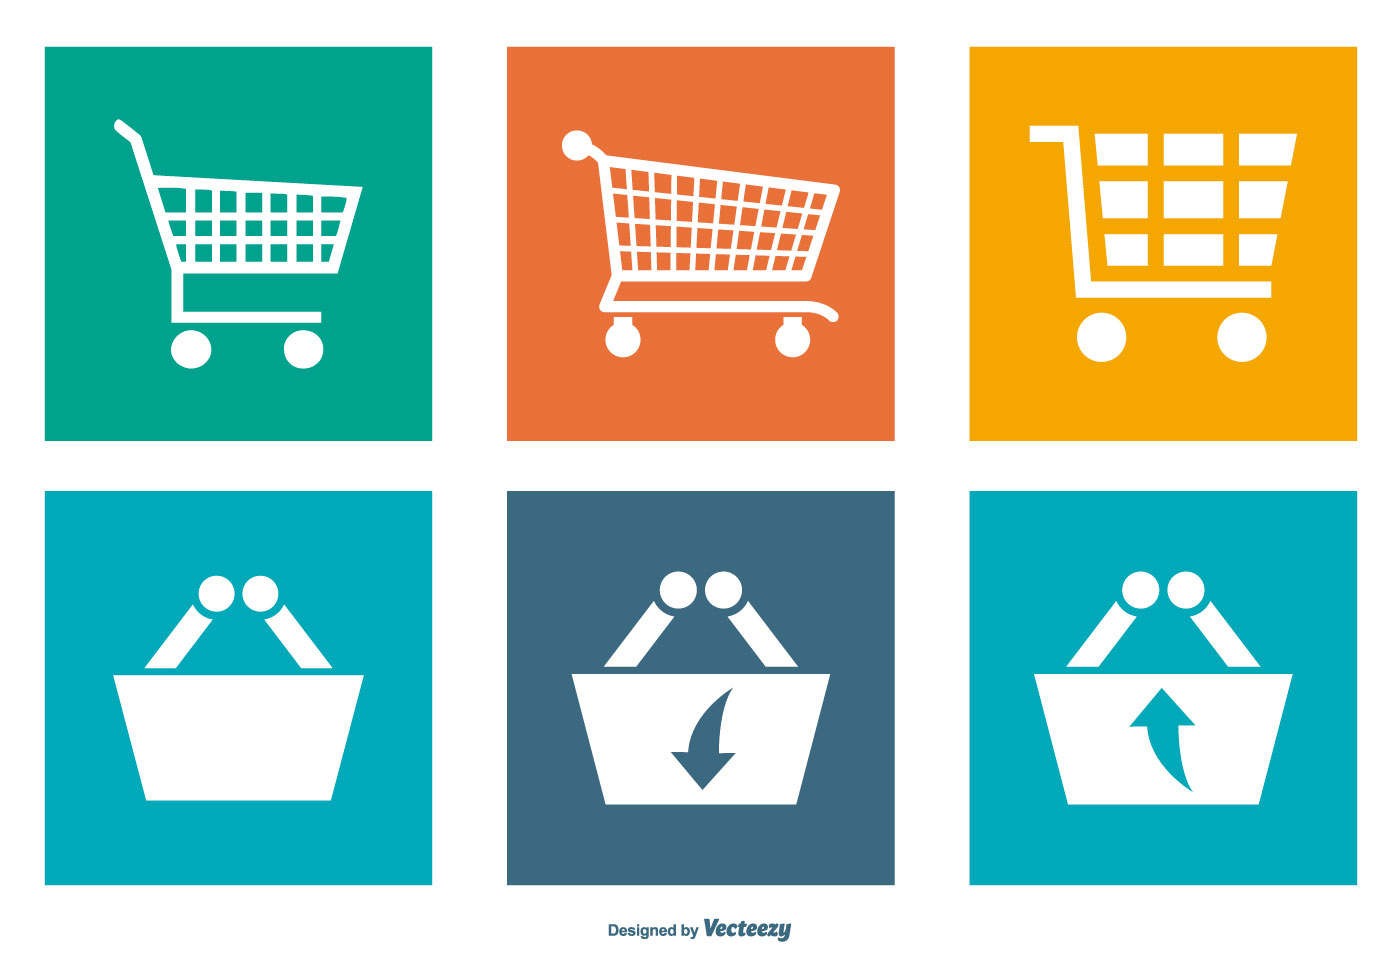 shopping cart icon free vector art 45767 free downloads